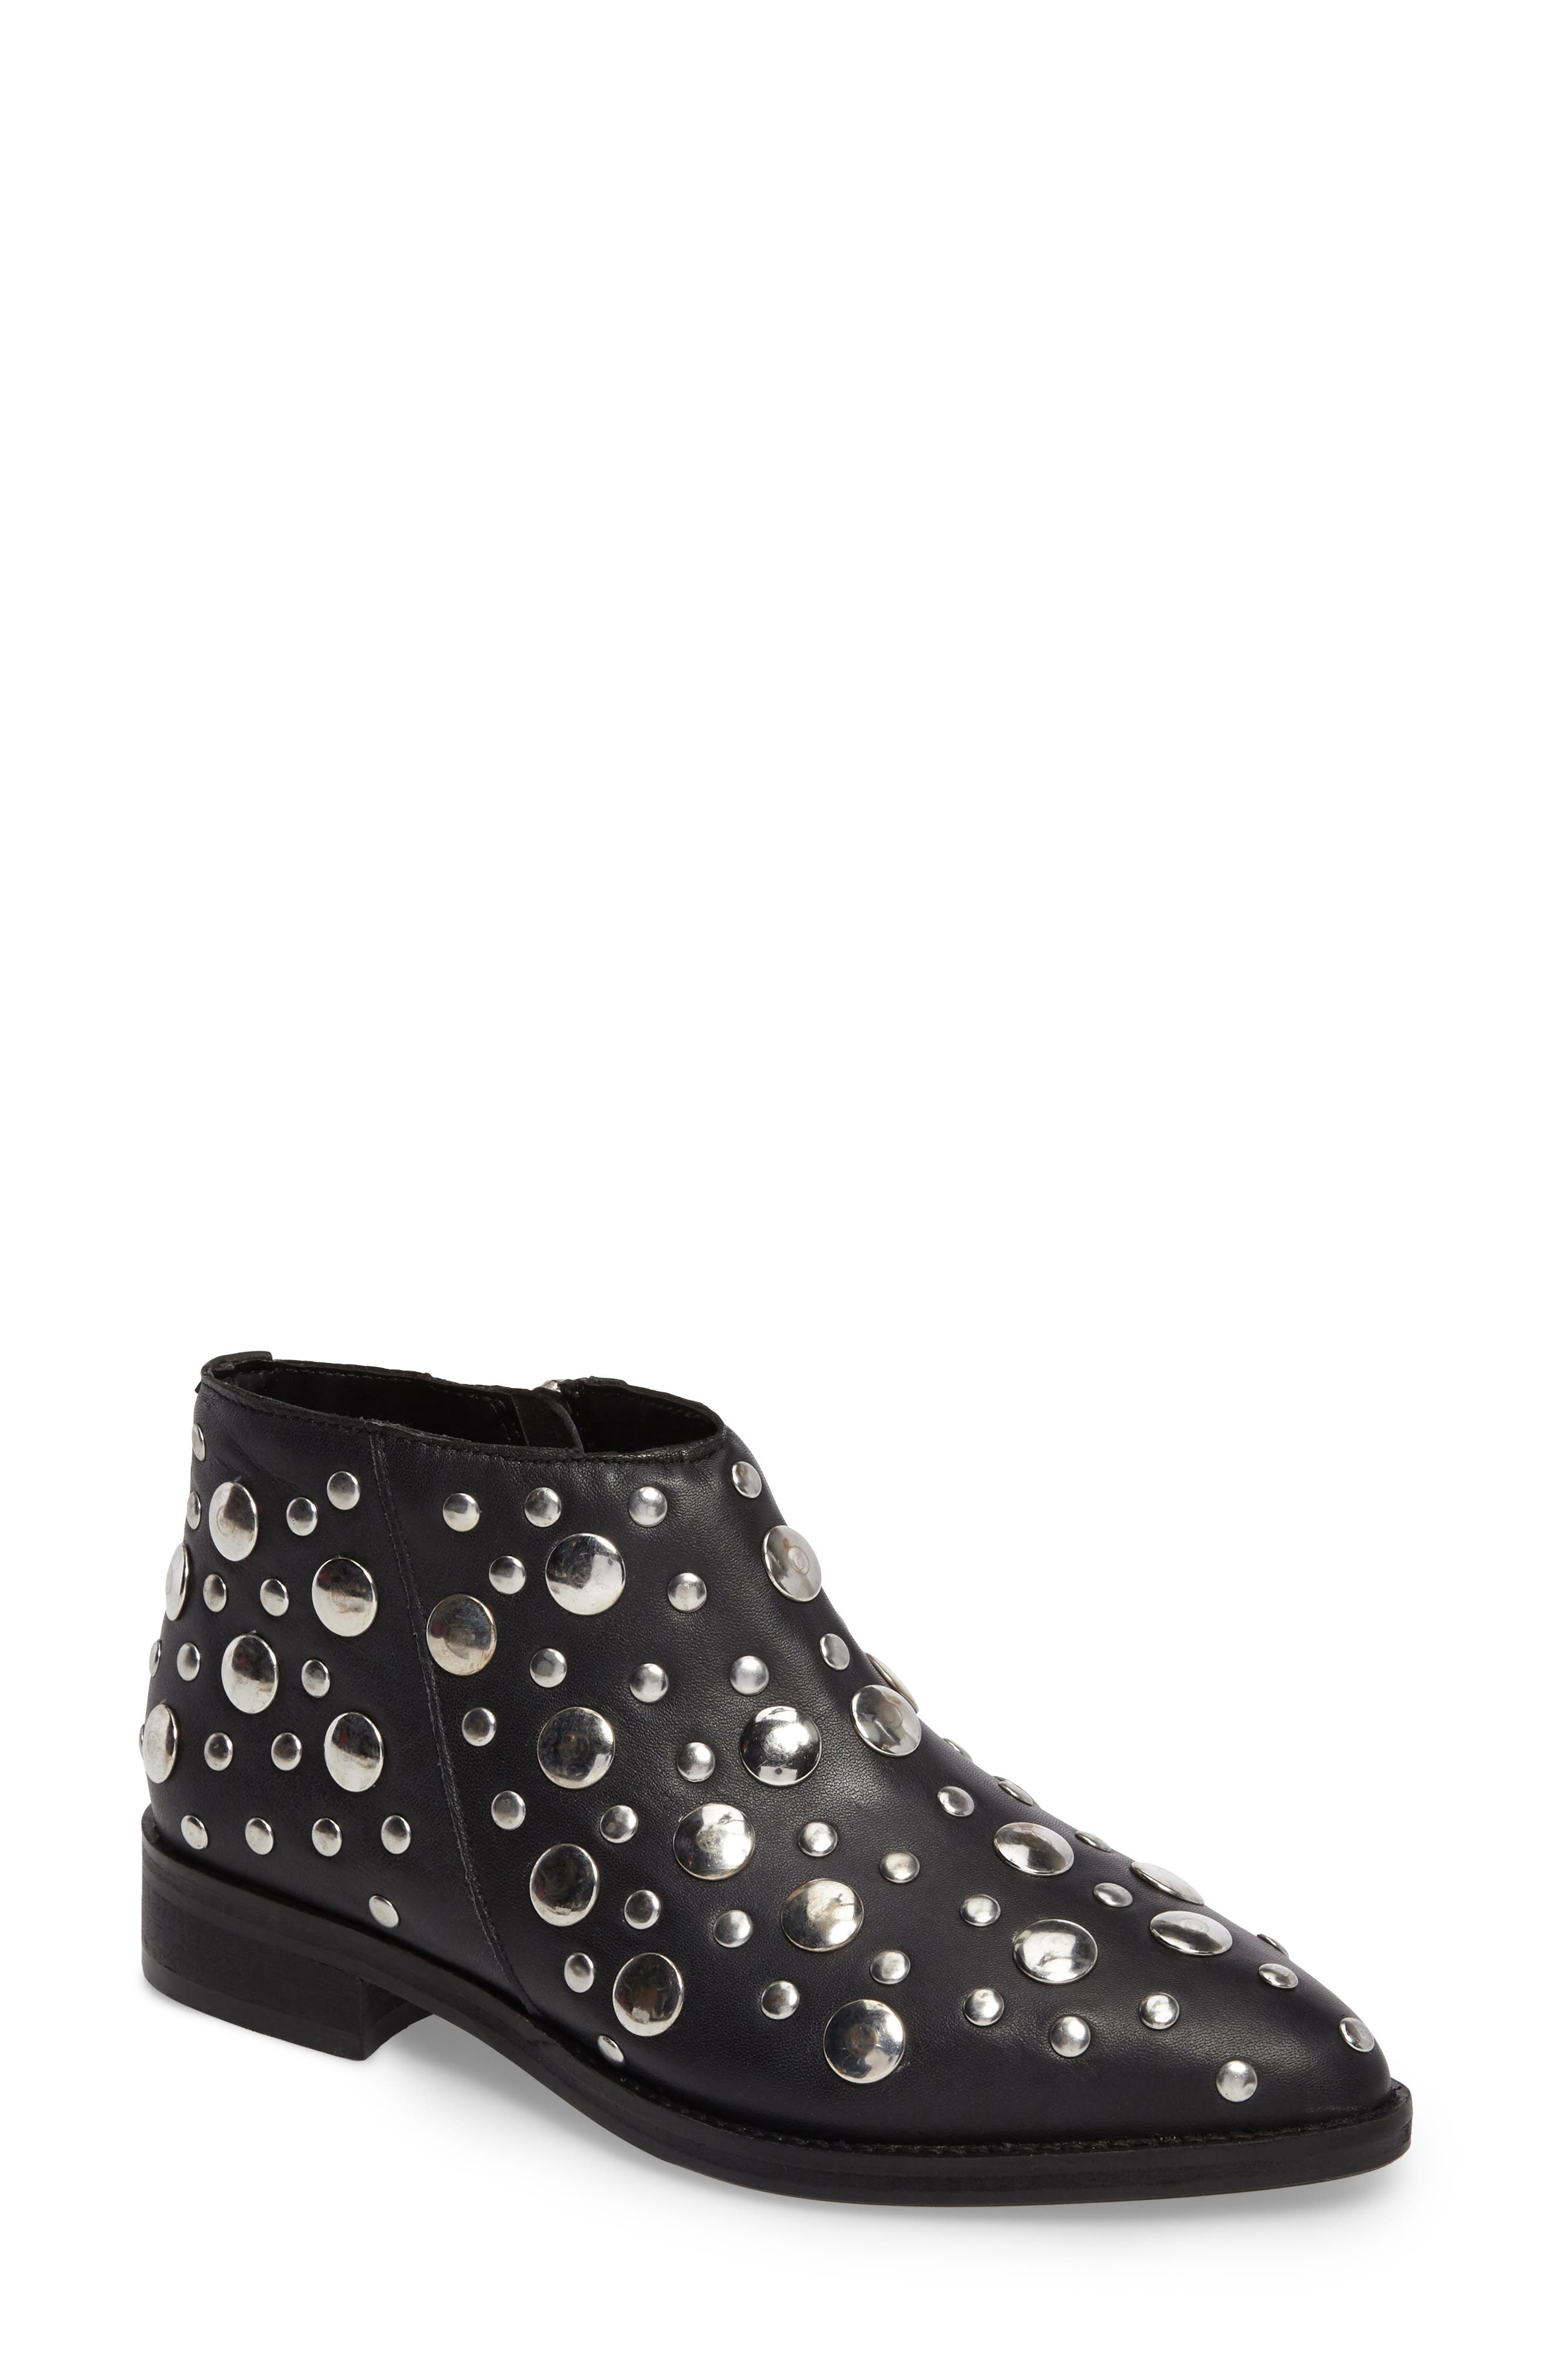 Alternate Image 1 Selected - Topshop Alec Studded Bootie (Women)